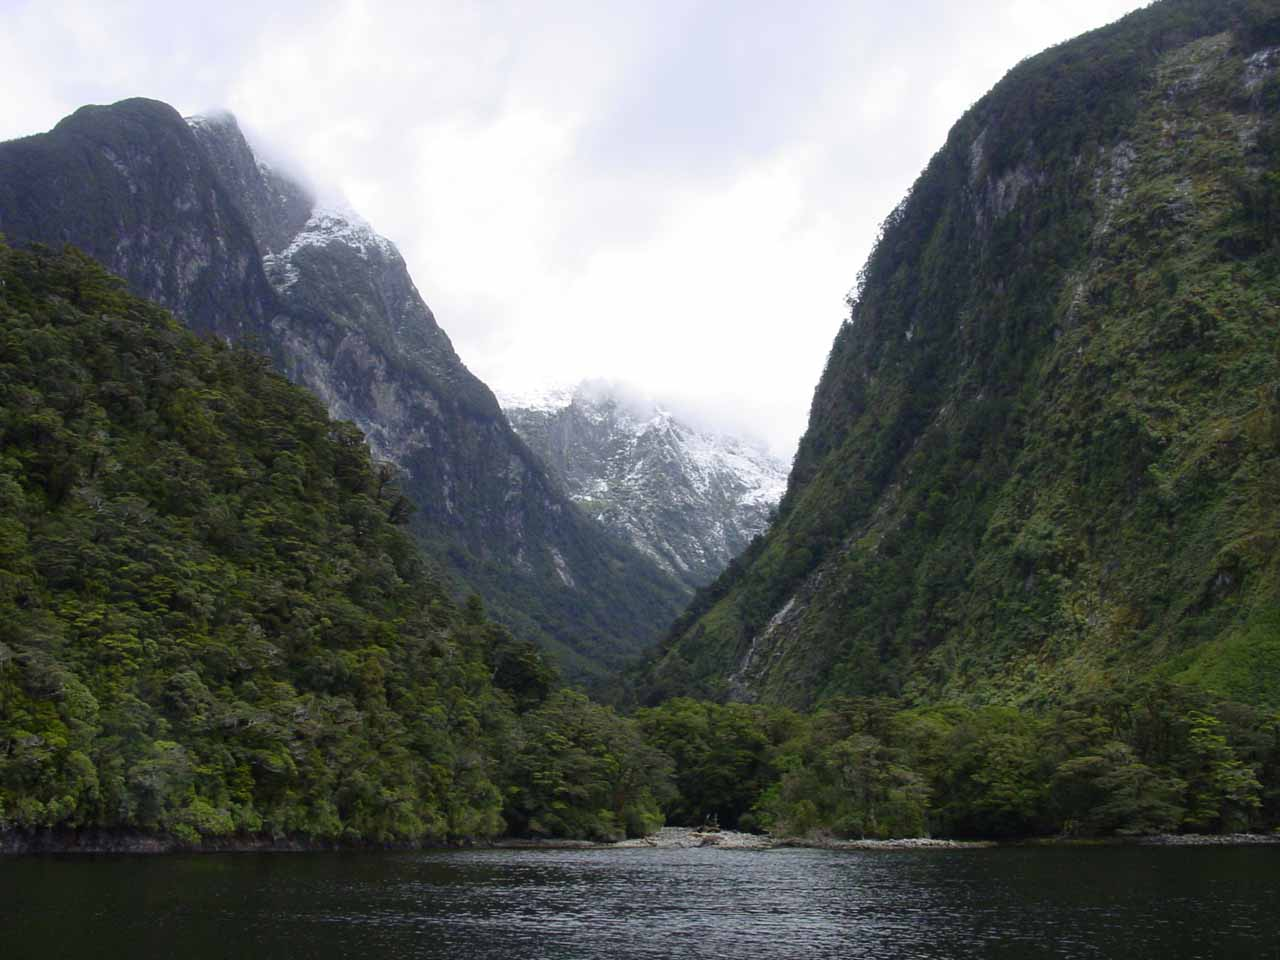 One of the attractive side arms of the Doubtful Sound seen during our cruise